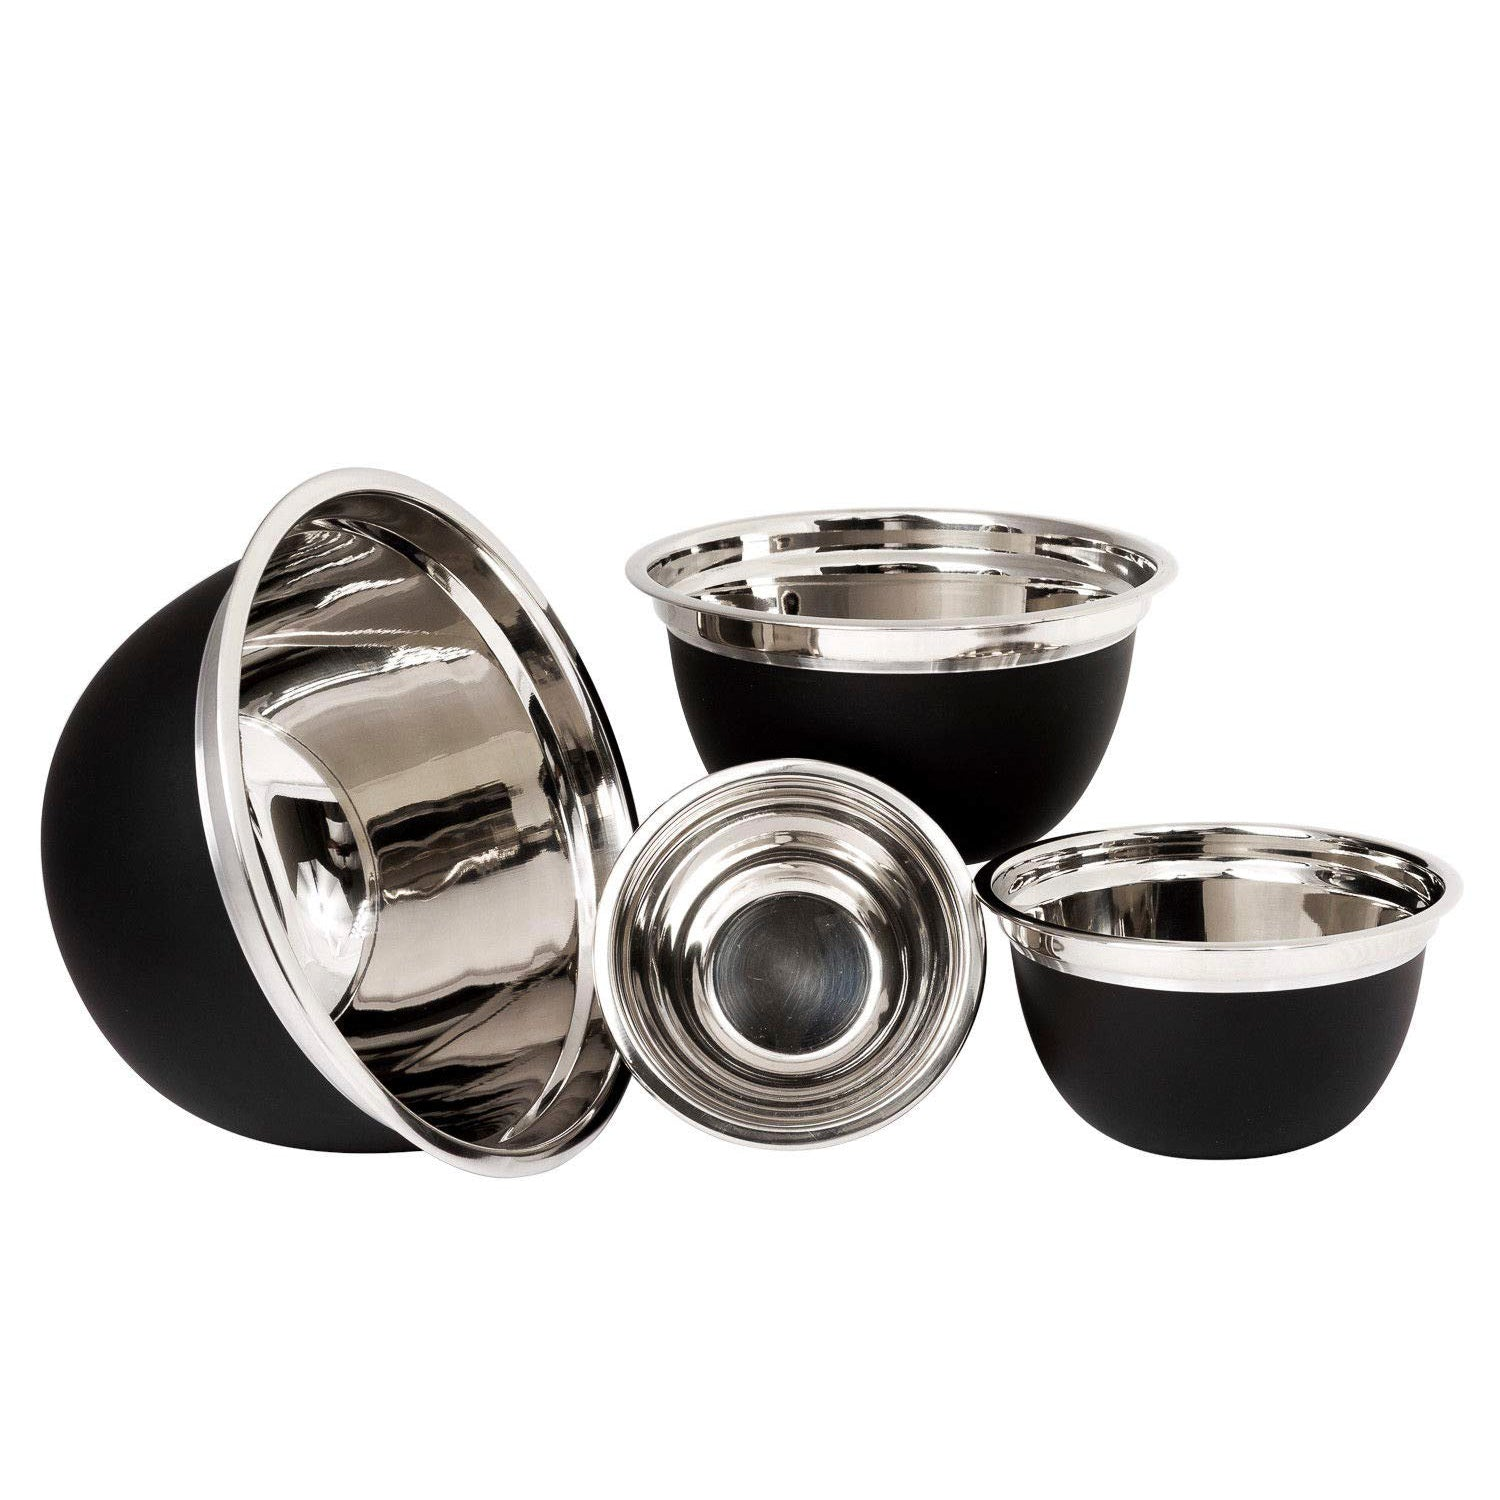 4 pc Stainless Steel Mixing Bowls – Mixing Bowl Set – Salad Bowl Set – 4 Bowl Sets for Kitchen – Serving Bowl Set (Black)